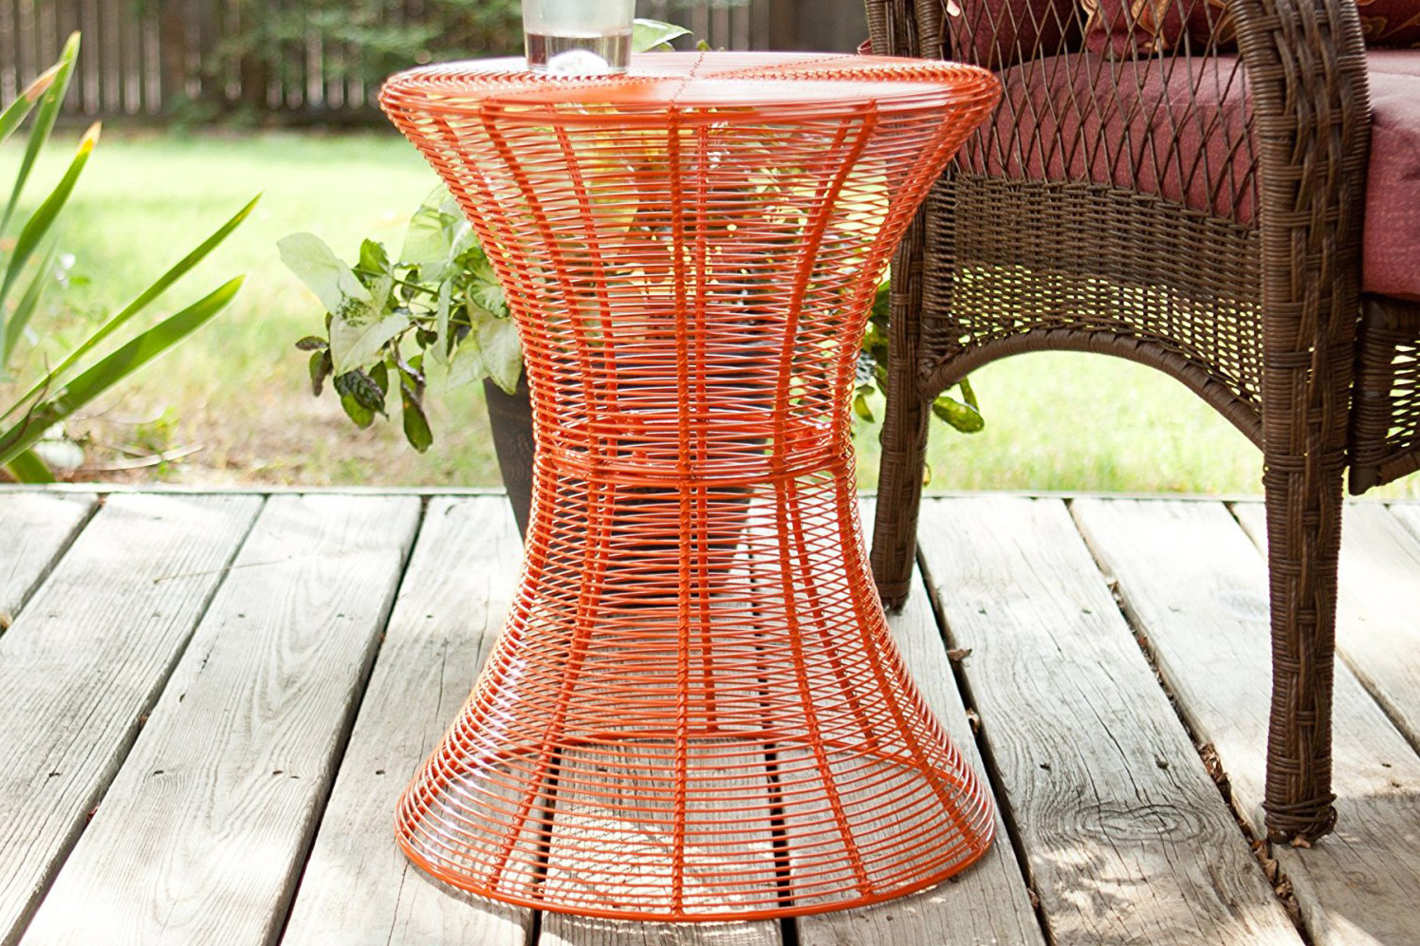 best end tables homebeez orange outdoor side table sei round metal accent ikea wood easter tablecloths home goods kitchen set two lamps room essentials shelf bookcase small living